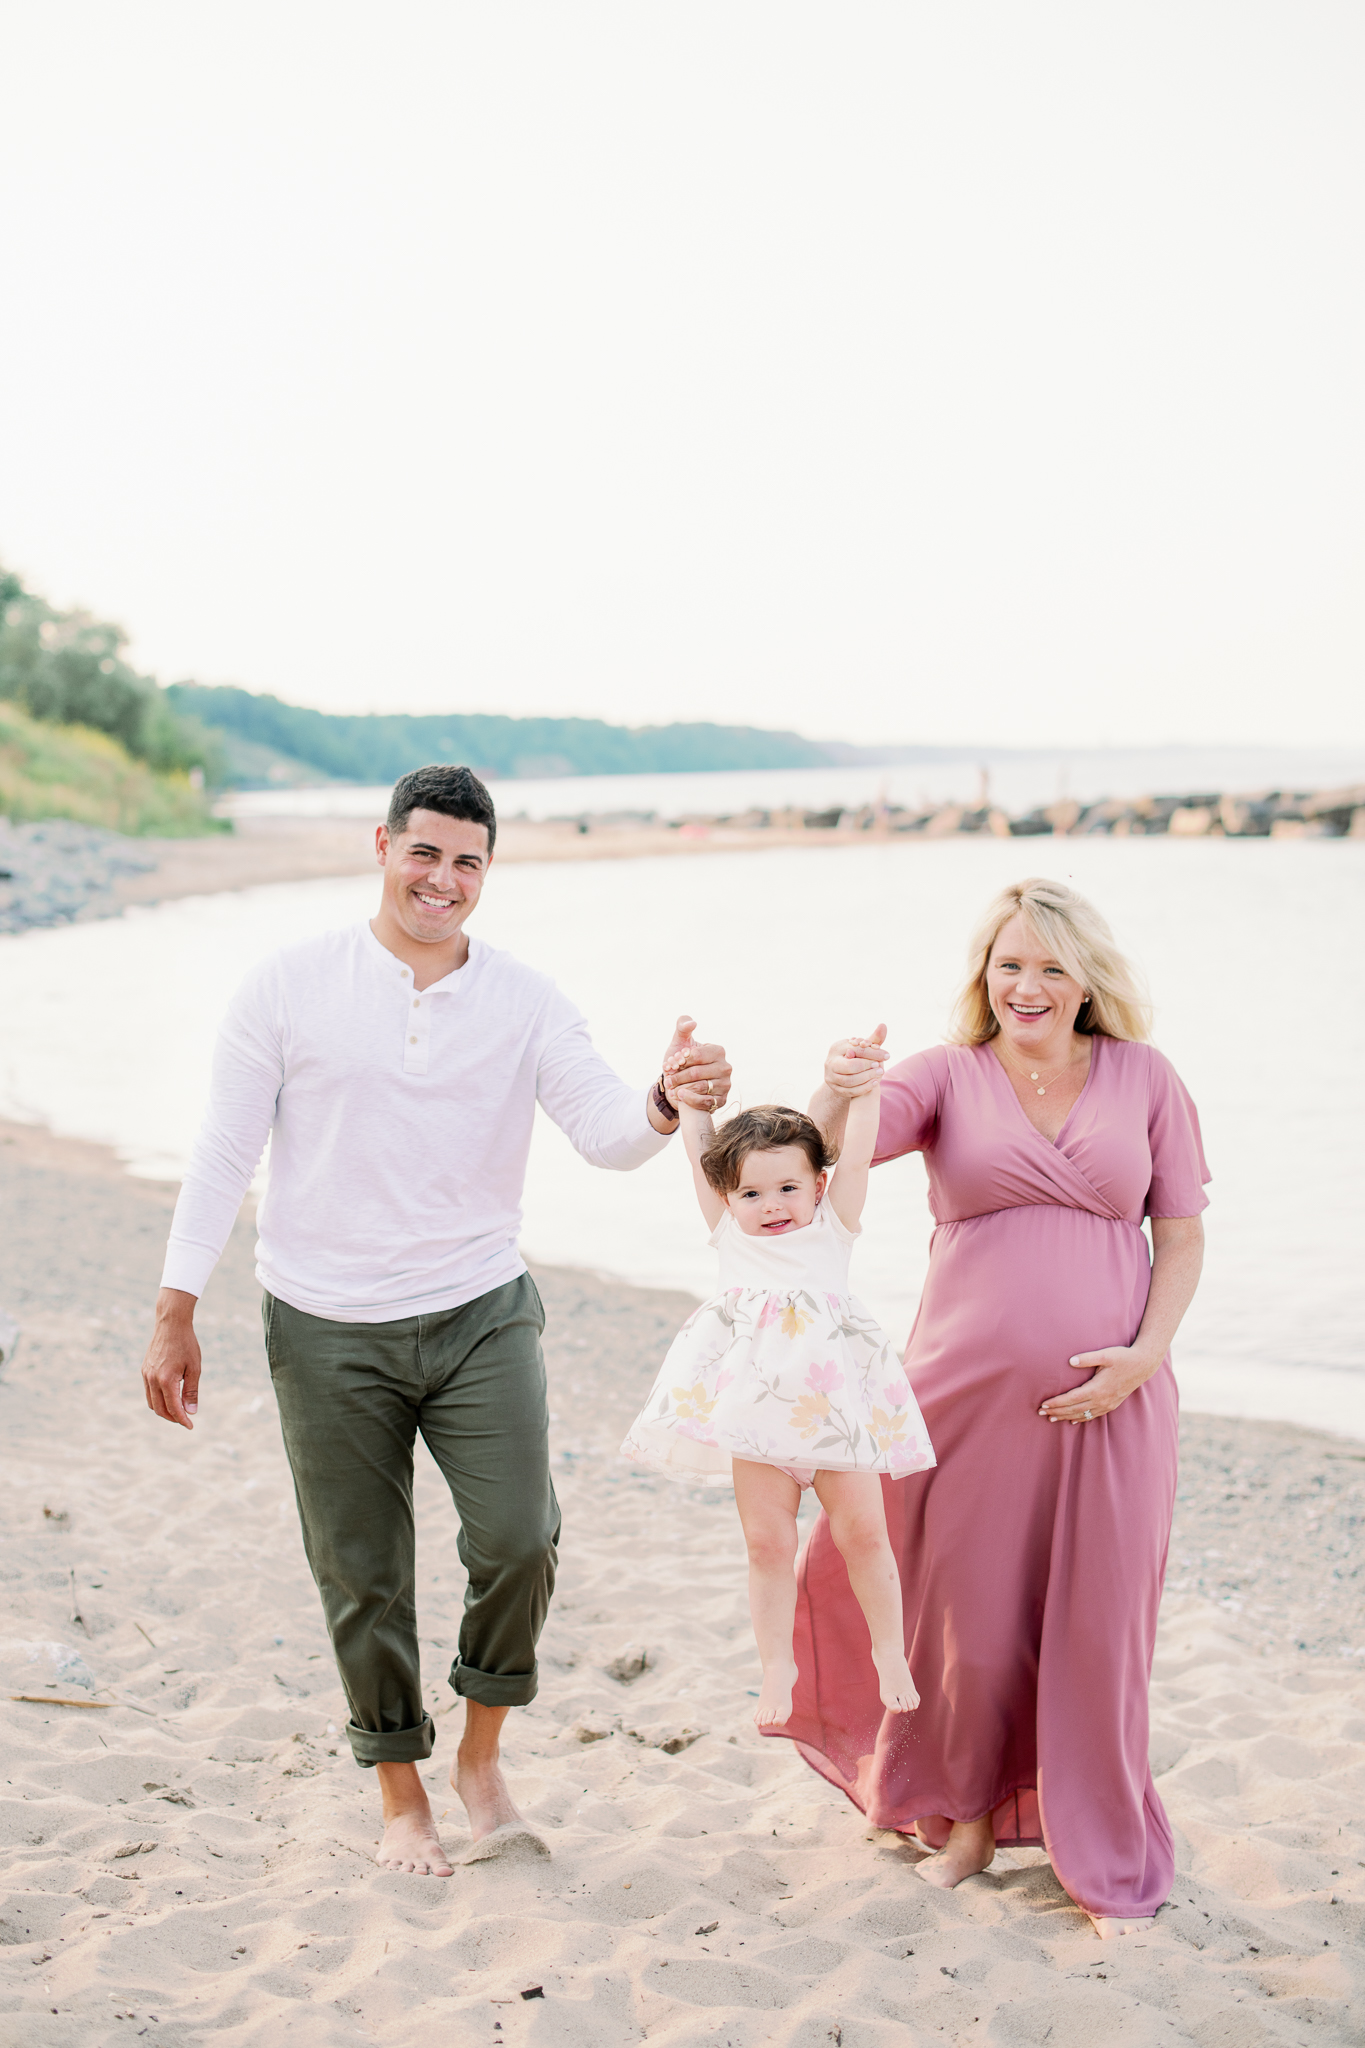 Beach Maternity Session - Light + Airy Family Photographer